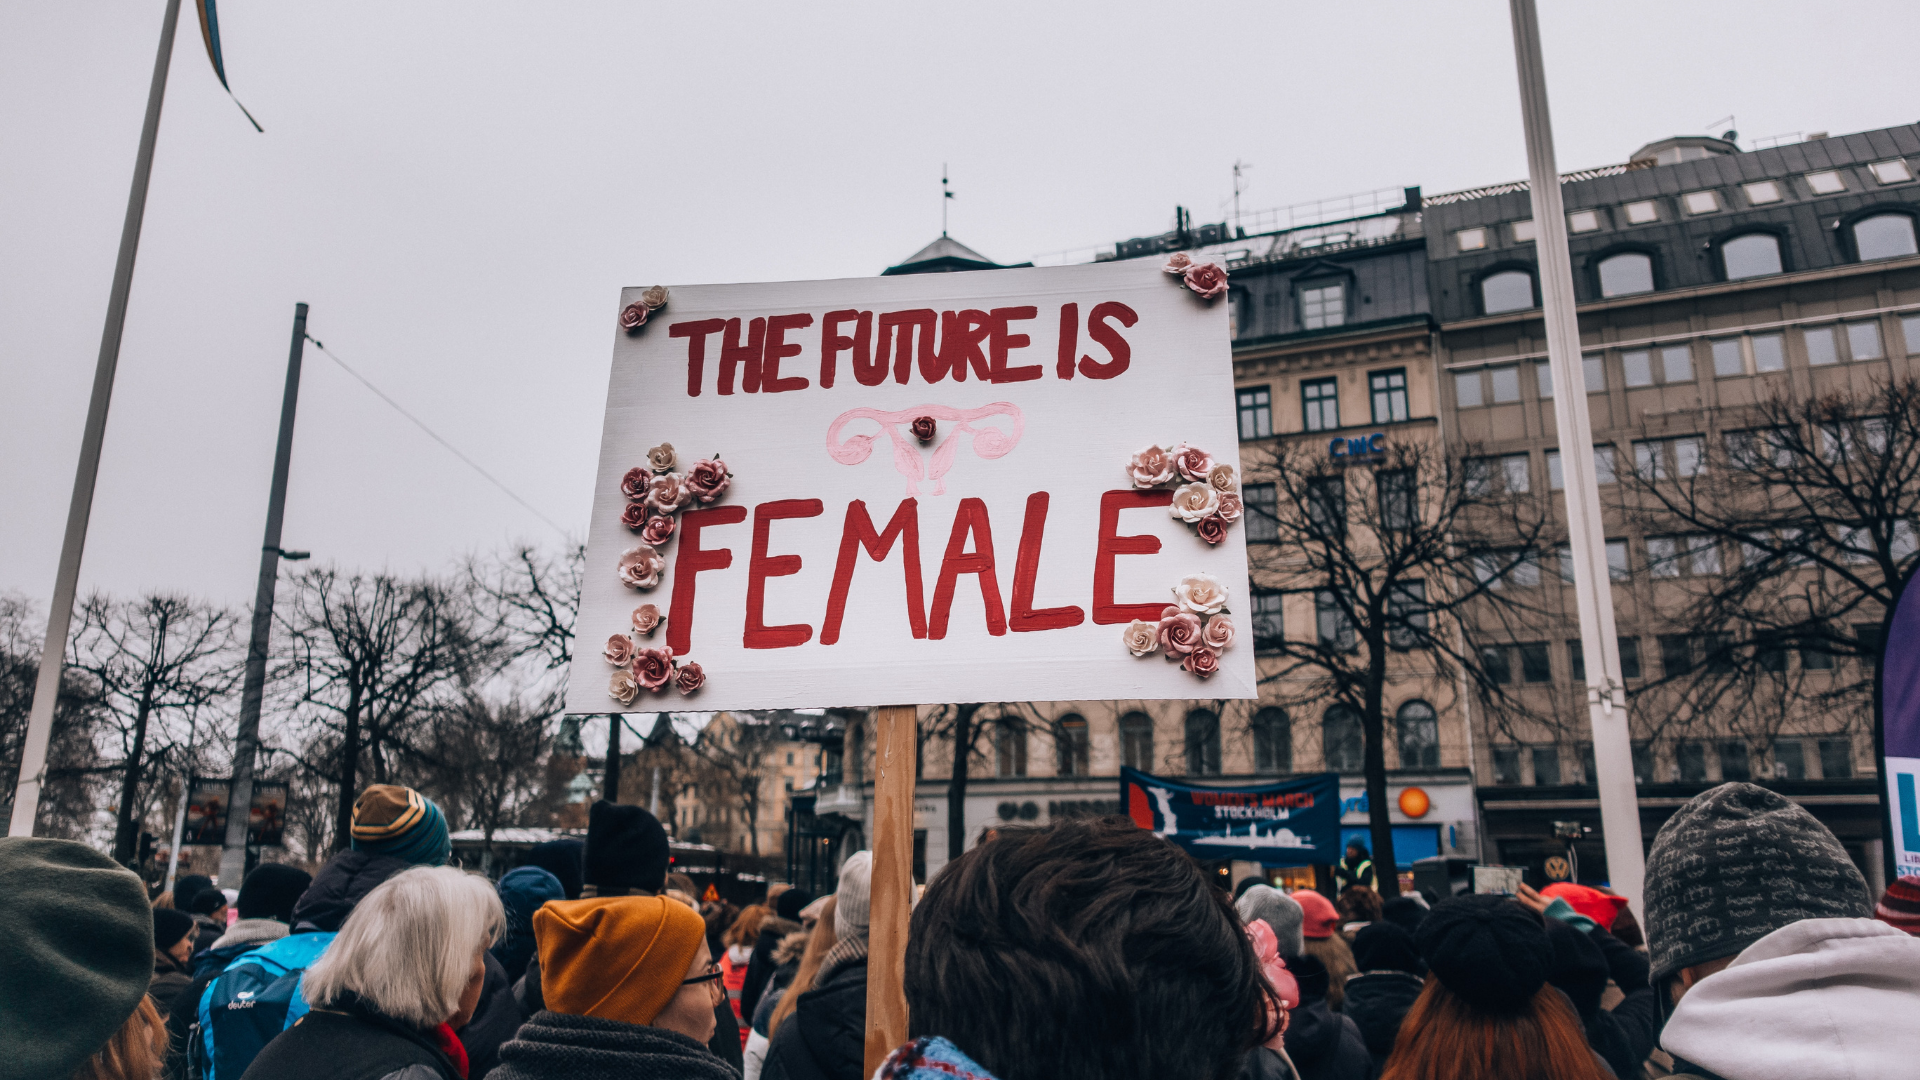 sign saying 'the future is female'